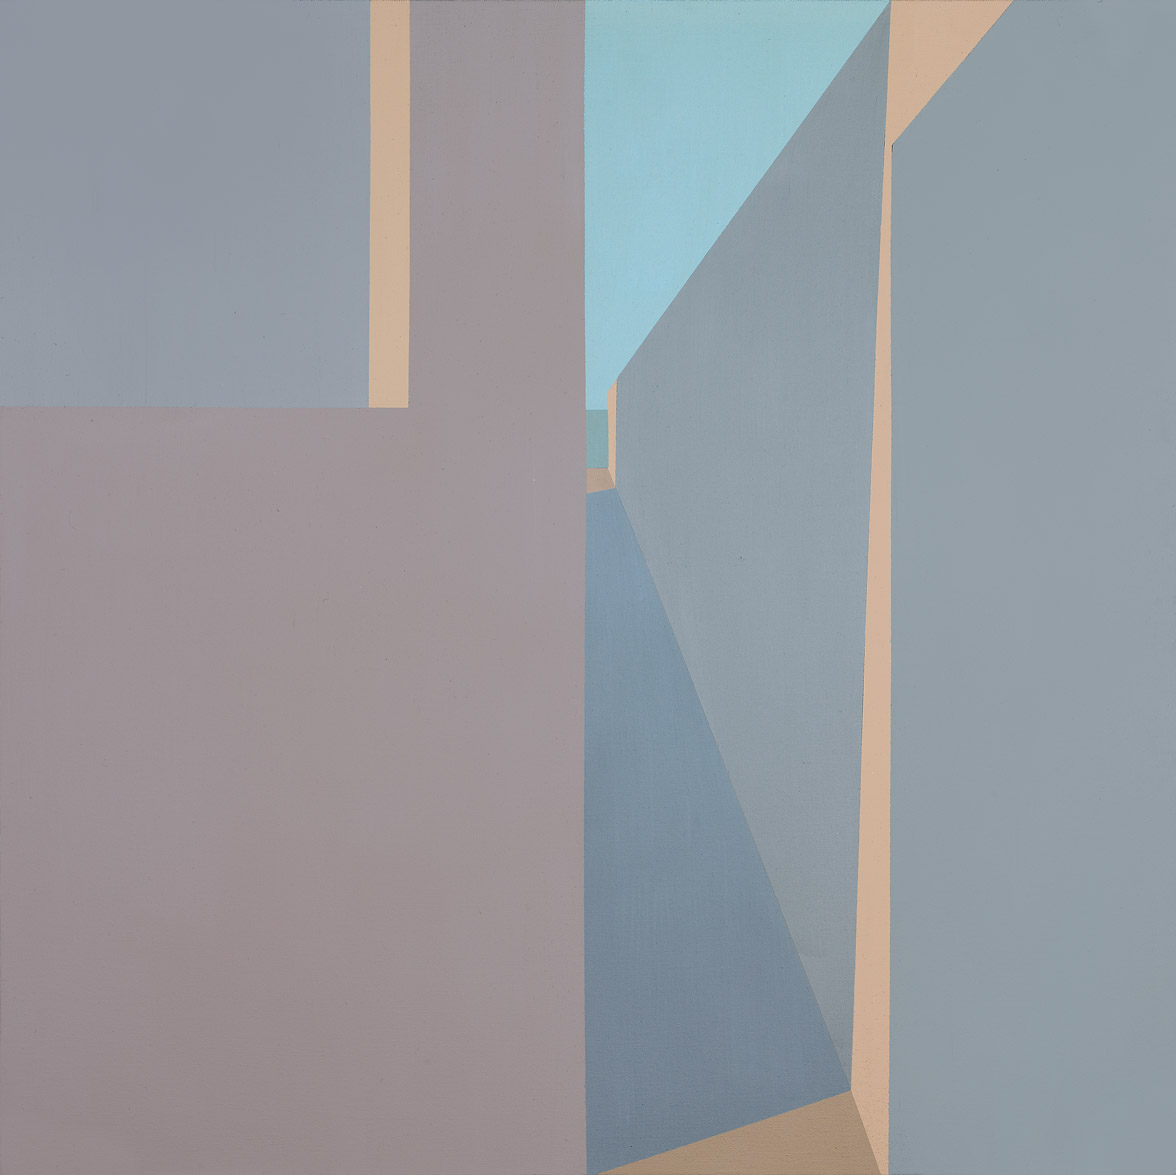 Untitled , 1974  acrylic on canvas 36 x 36 inches; 91.4 x 91.4 centimeters